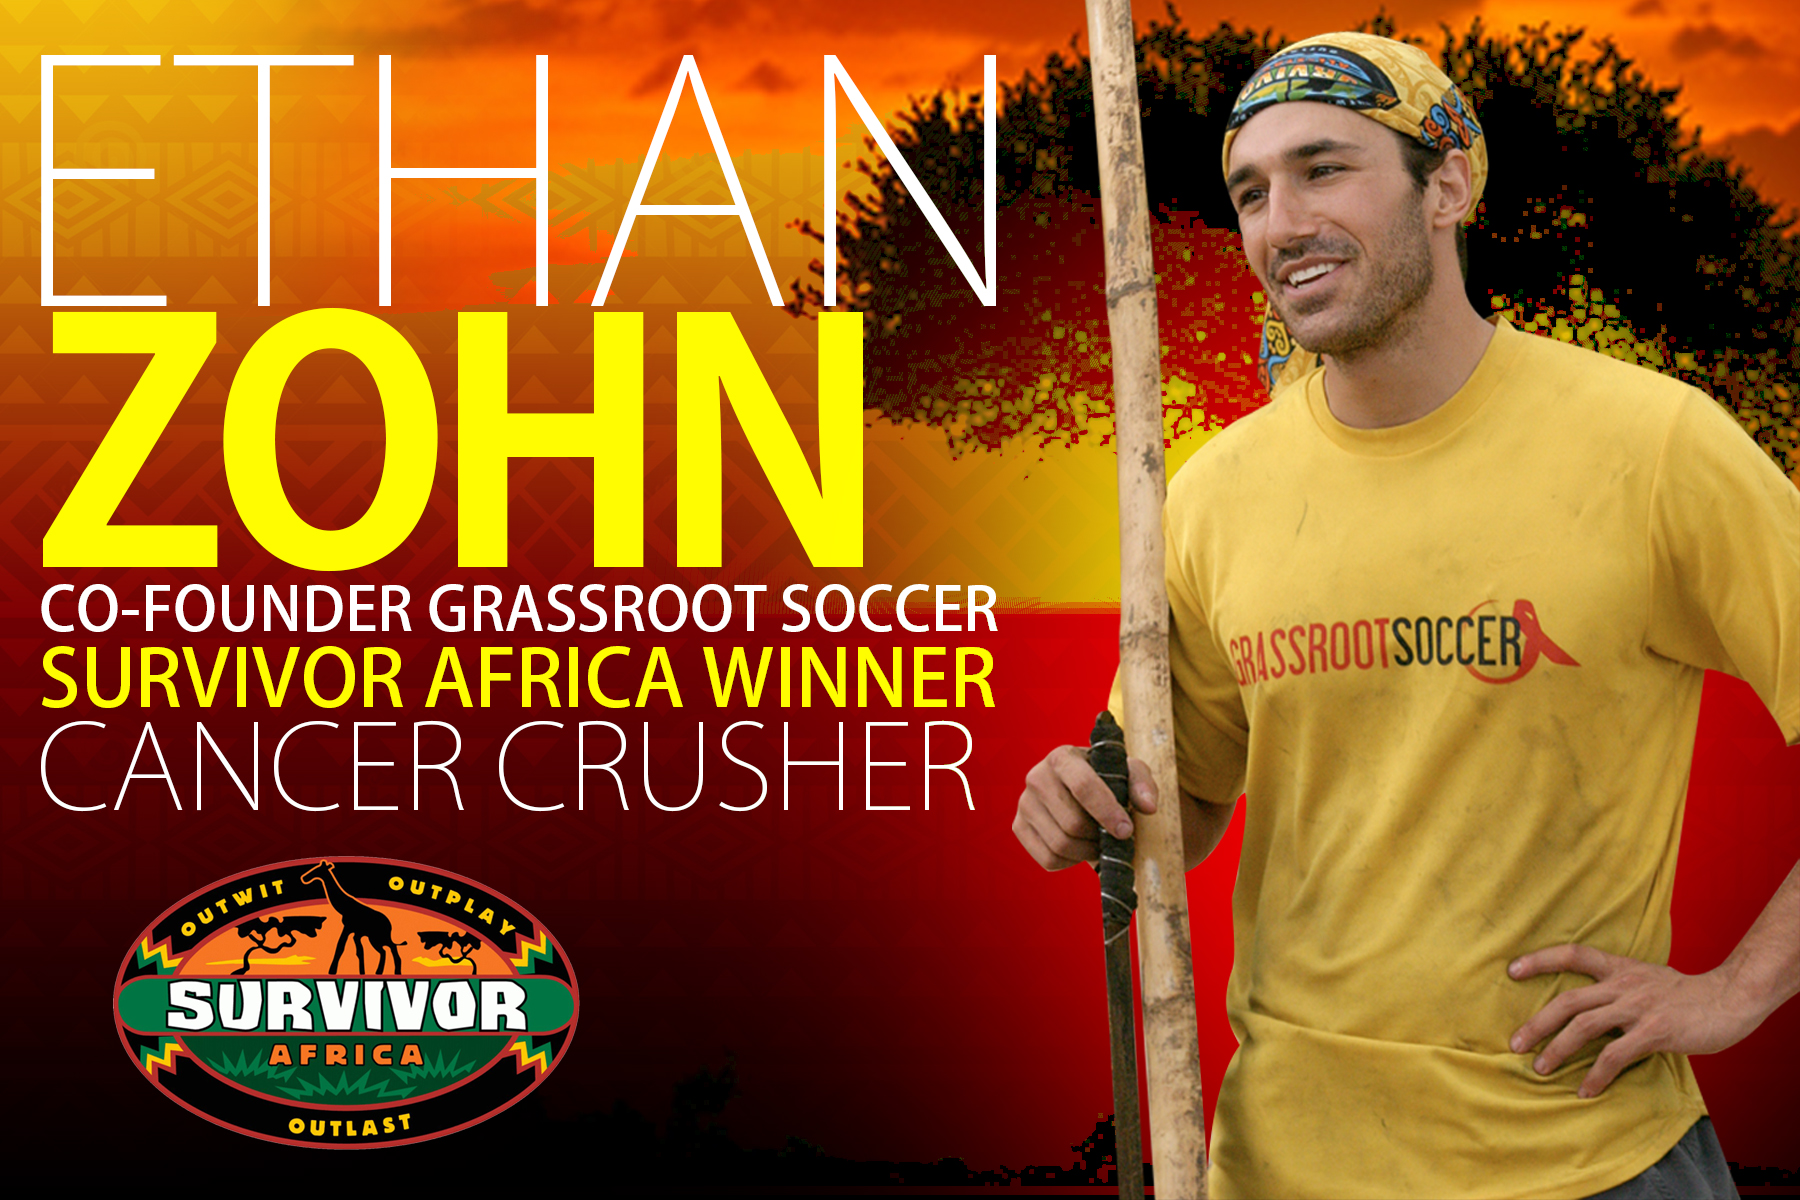 From Winning Survivor Africa To Crushing Cancer - A Discussion With Ethan Zohn